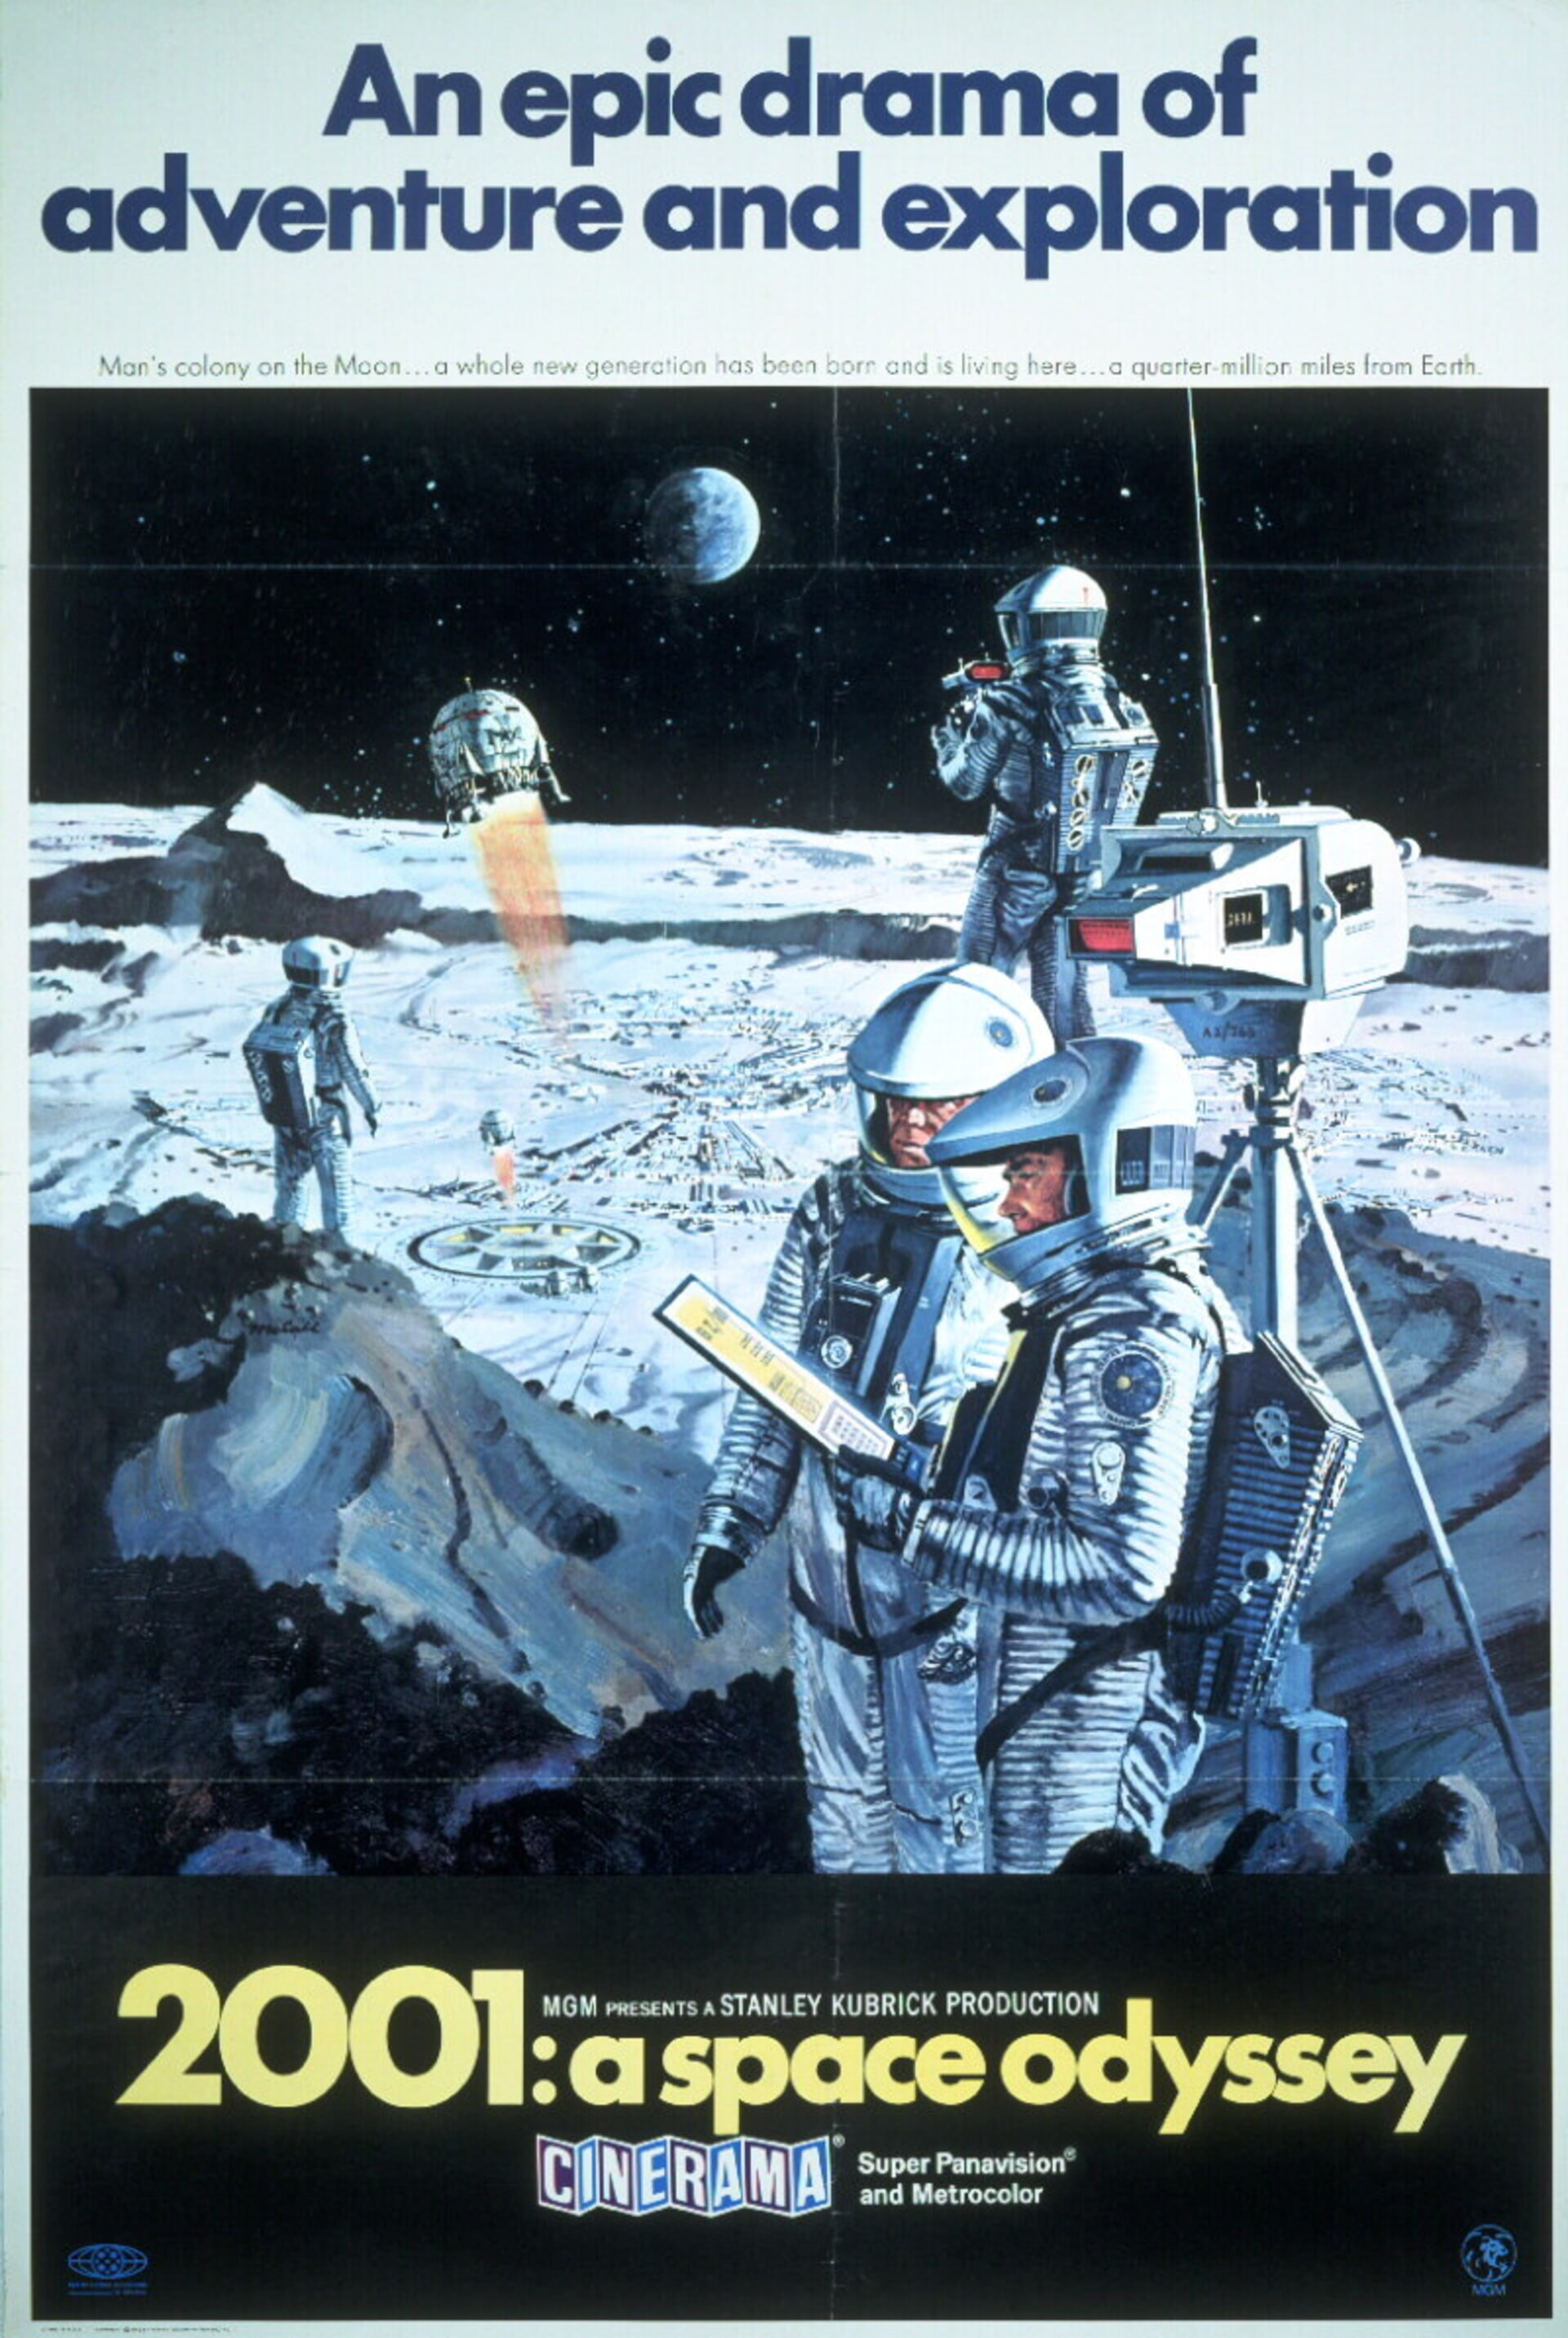 2001: A Space Odyssey - Poster 6